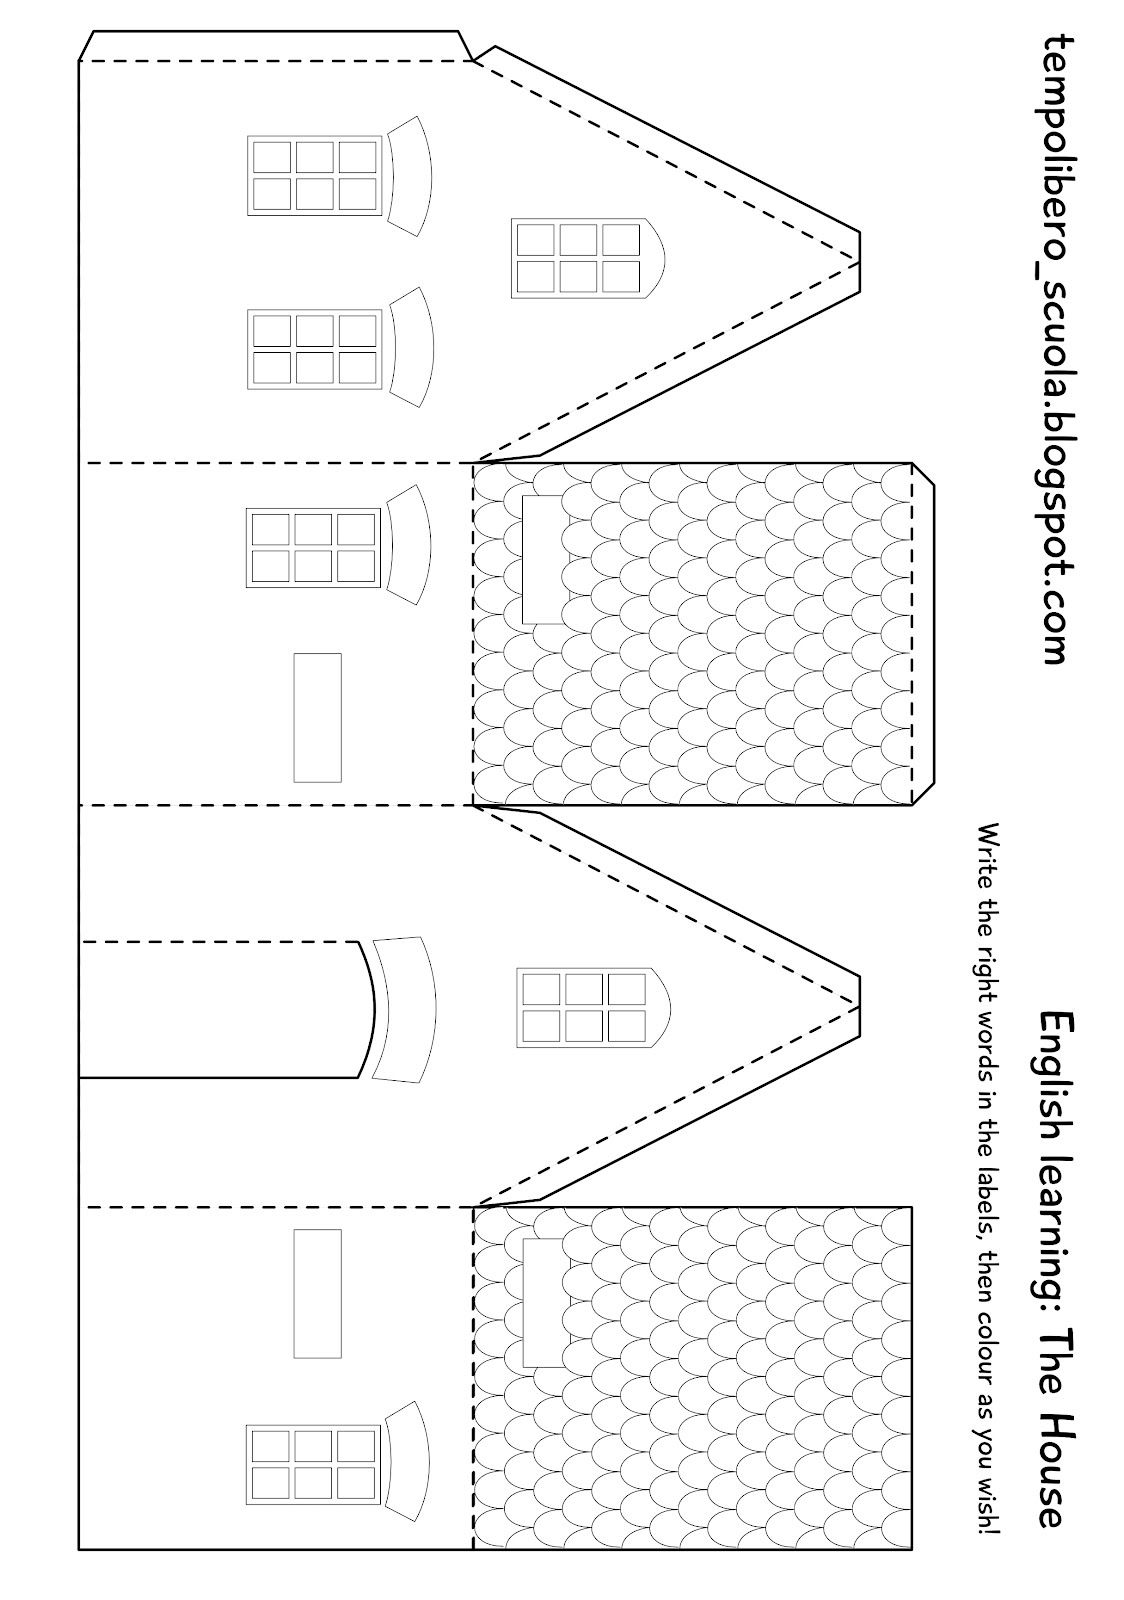 Embroidery 101 how to embroider house template template and house paper house template gingerbread house template printablefree jeuxipadfo Choice Image